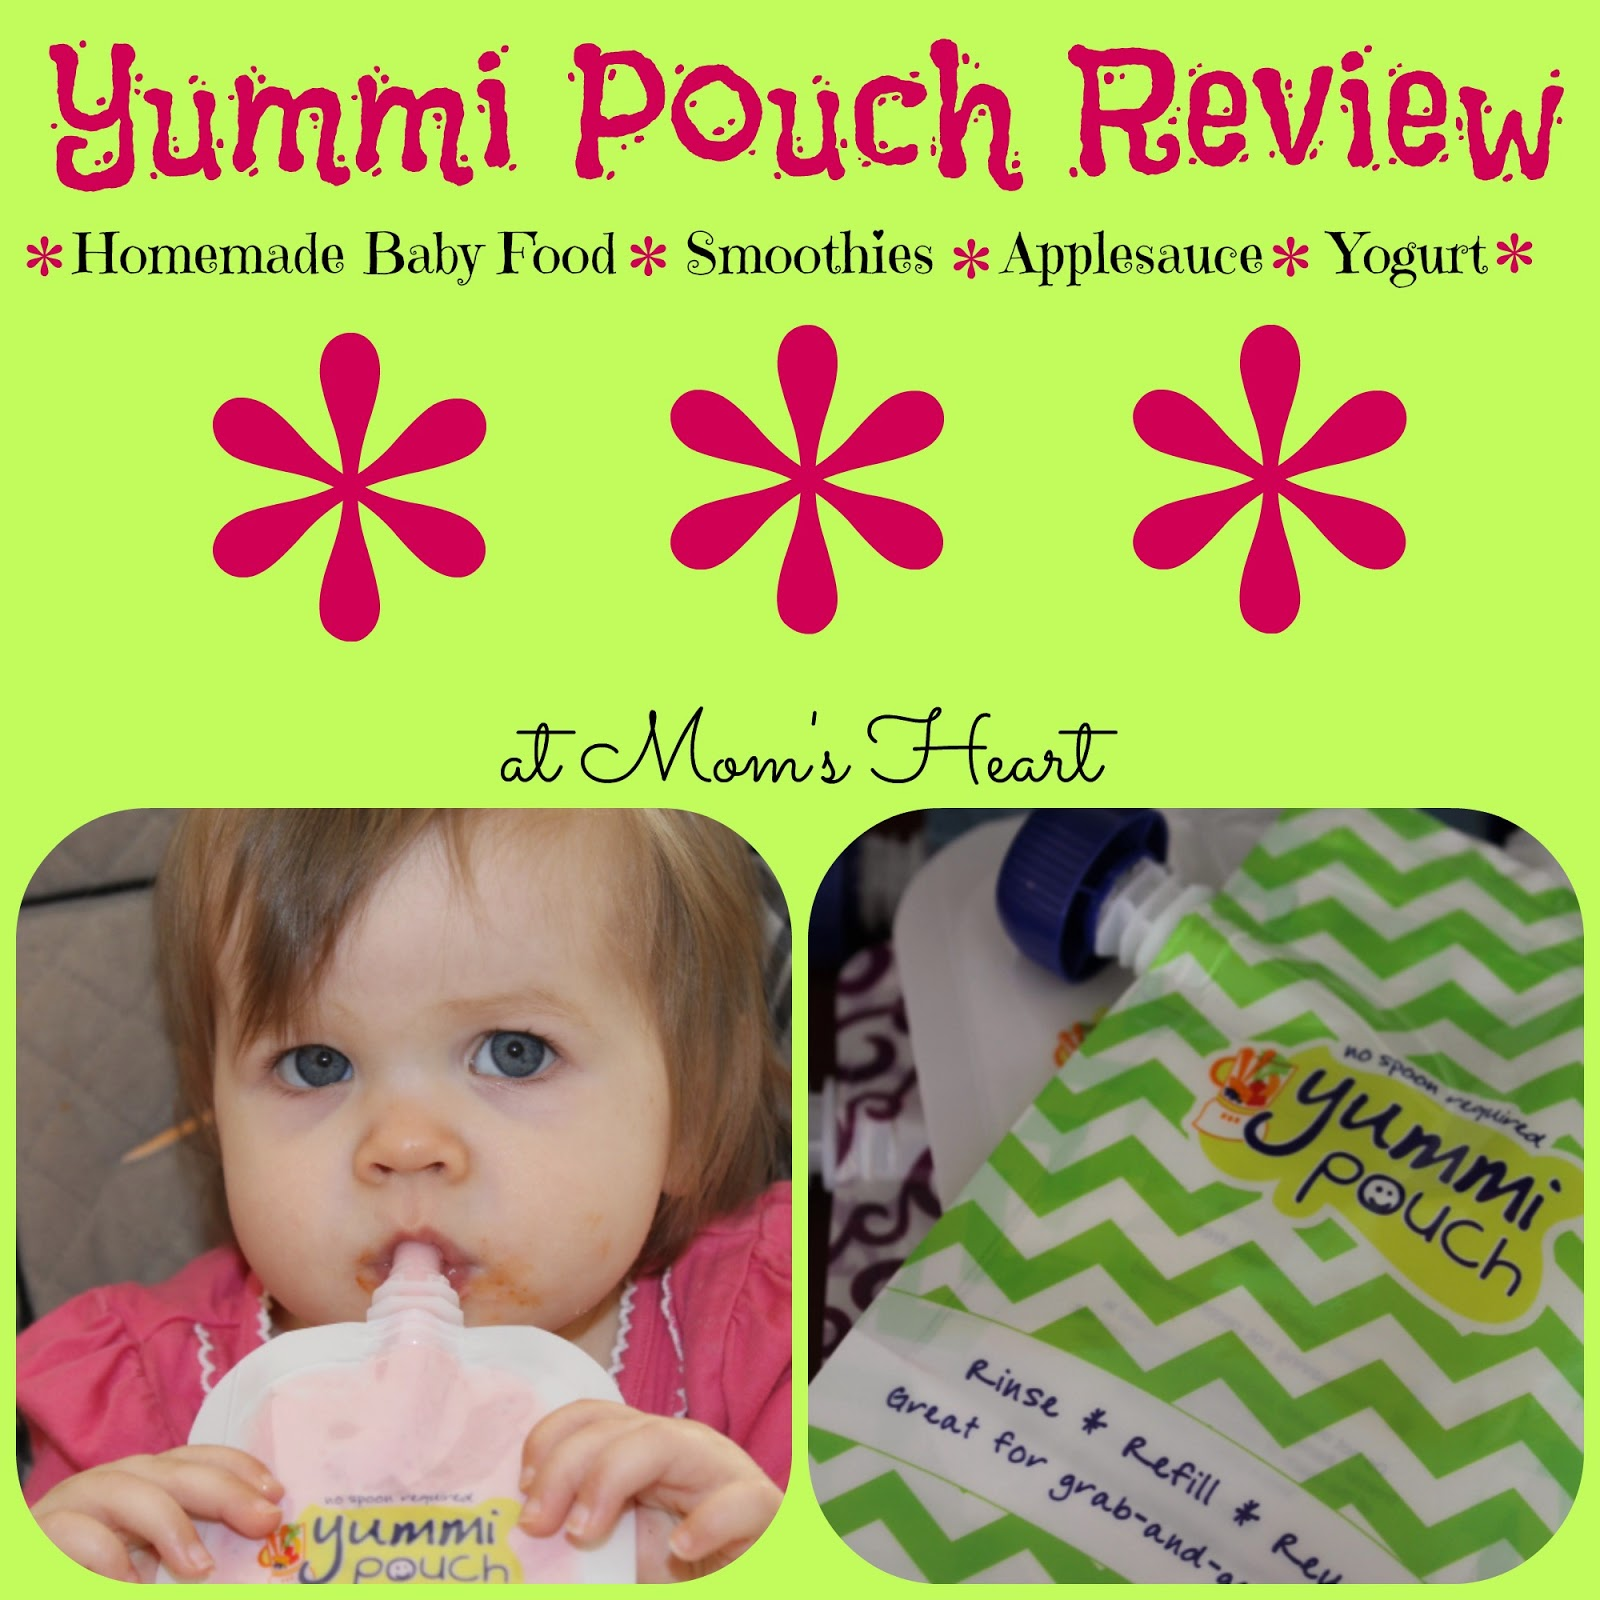 Yummi Pouch Review